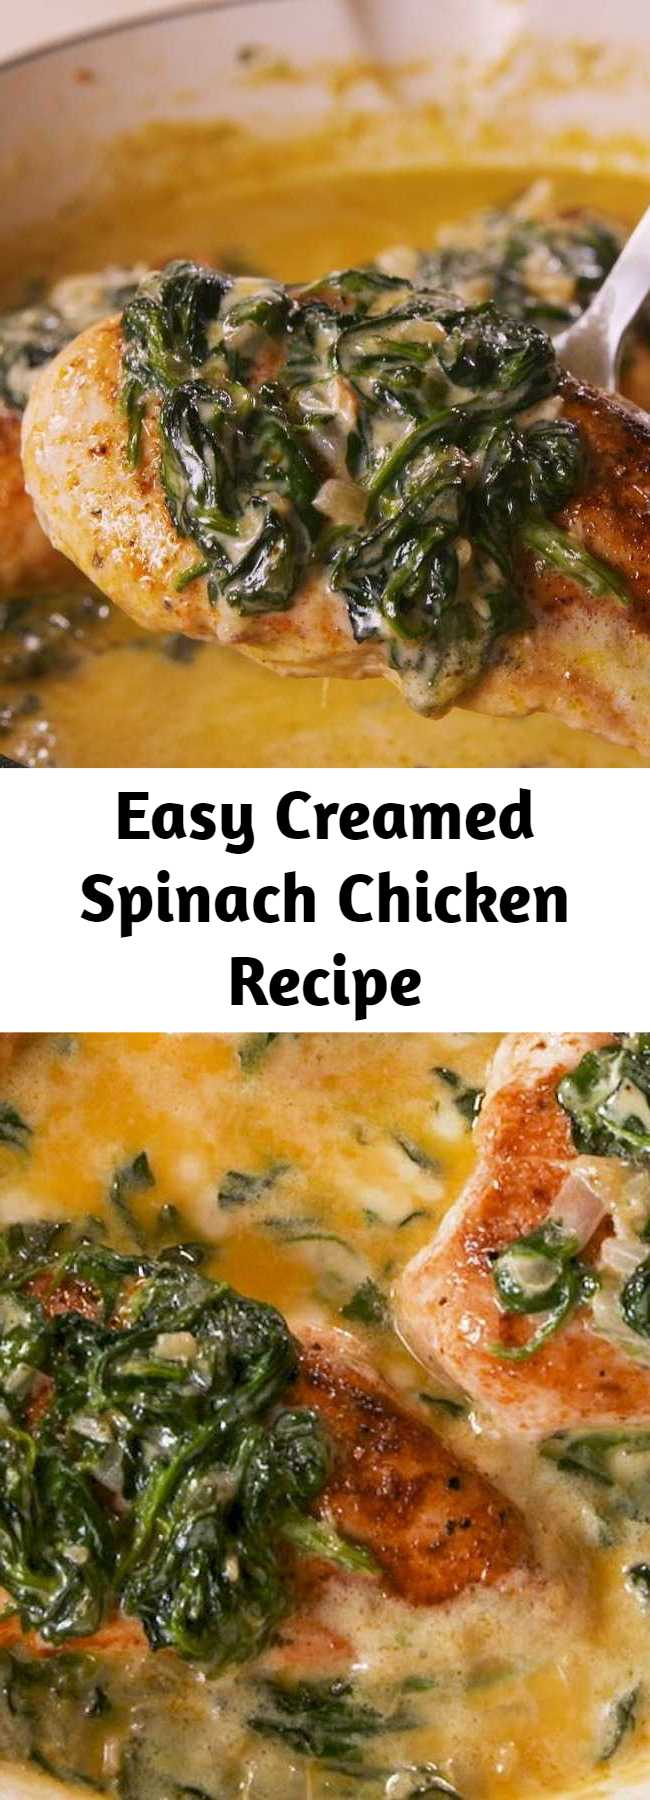 Easy Creamed Spinach Chicken Recipe - You'll be eating straight out of the pan. #food #easyrecipe #chickenrecipe #onepot #dinner